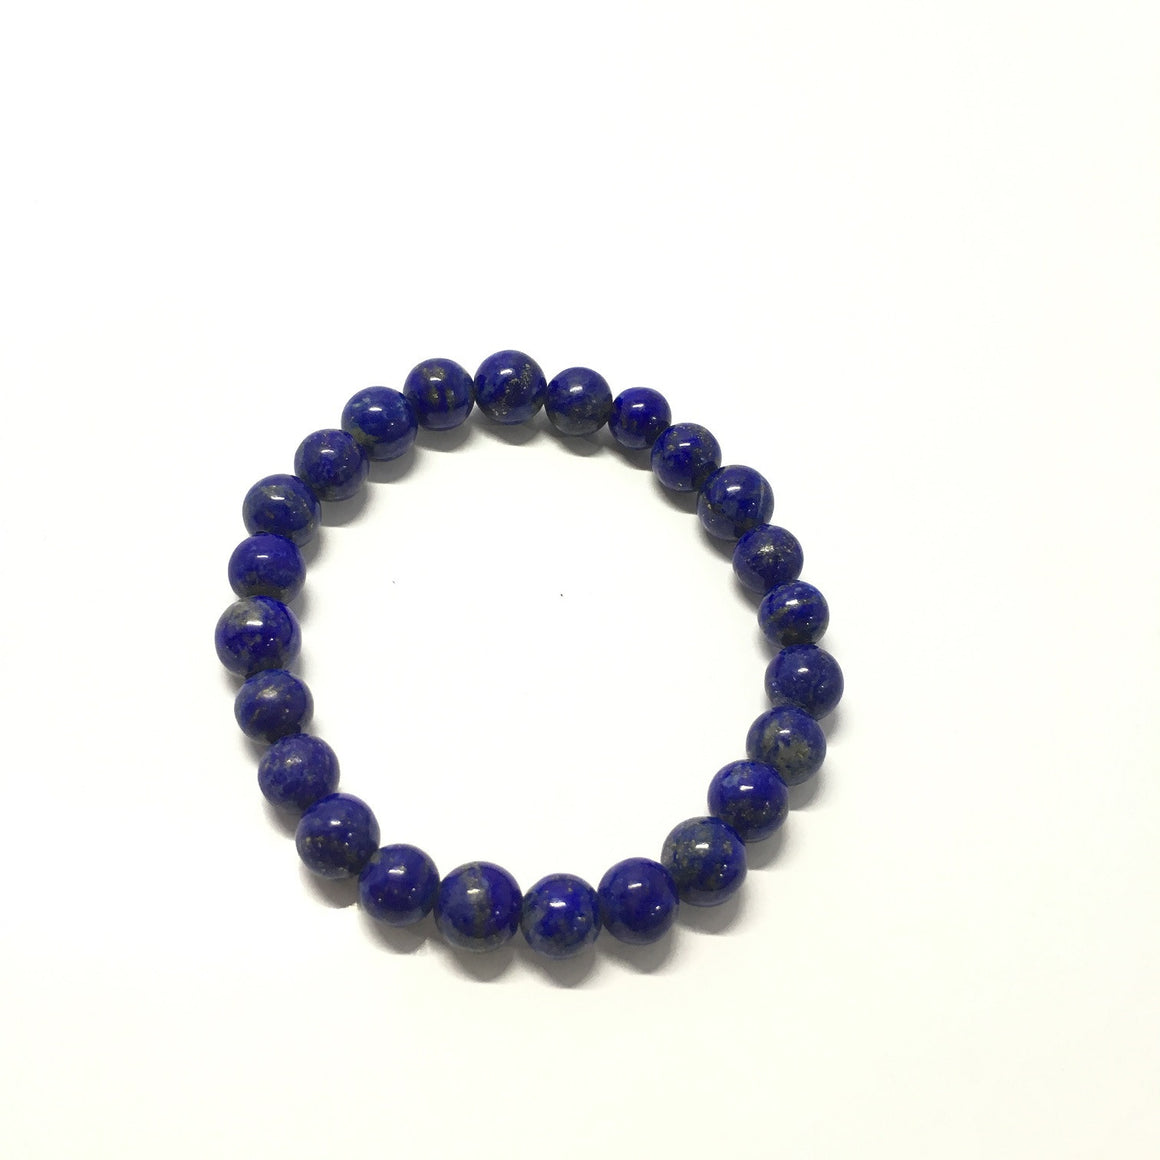 73.55 Carat , 24 Round Beads Handmade Bracelet With Elastic Stretch,Grade AAA Quality Beads